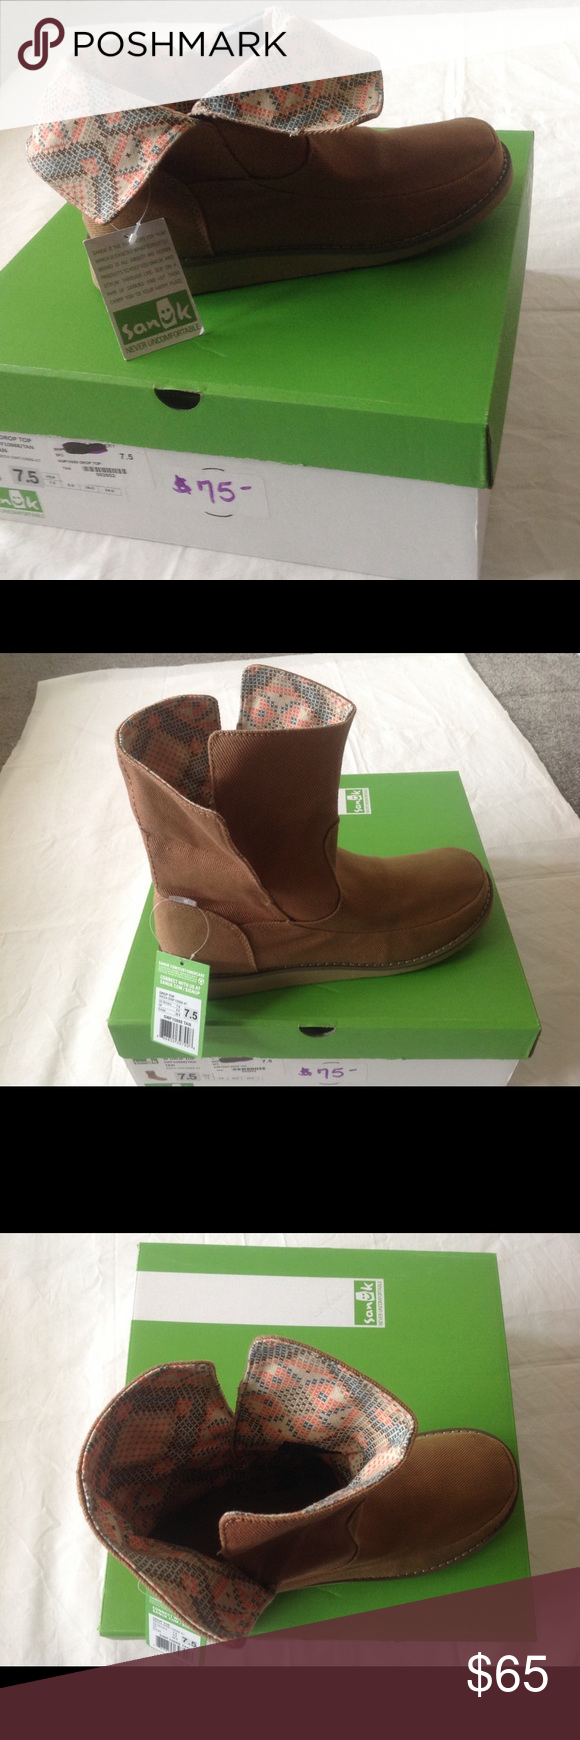 last chance sale Brand new with tags sanuk boots. They are a thick fabric and thick soles. Open to offers. But selling cheaper on merc! Sanuk Shoes Ankle Boots & Booties